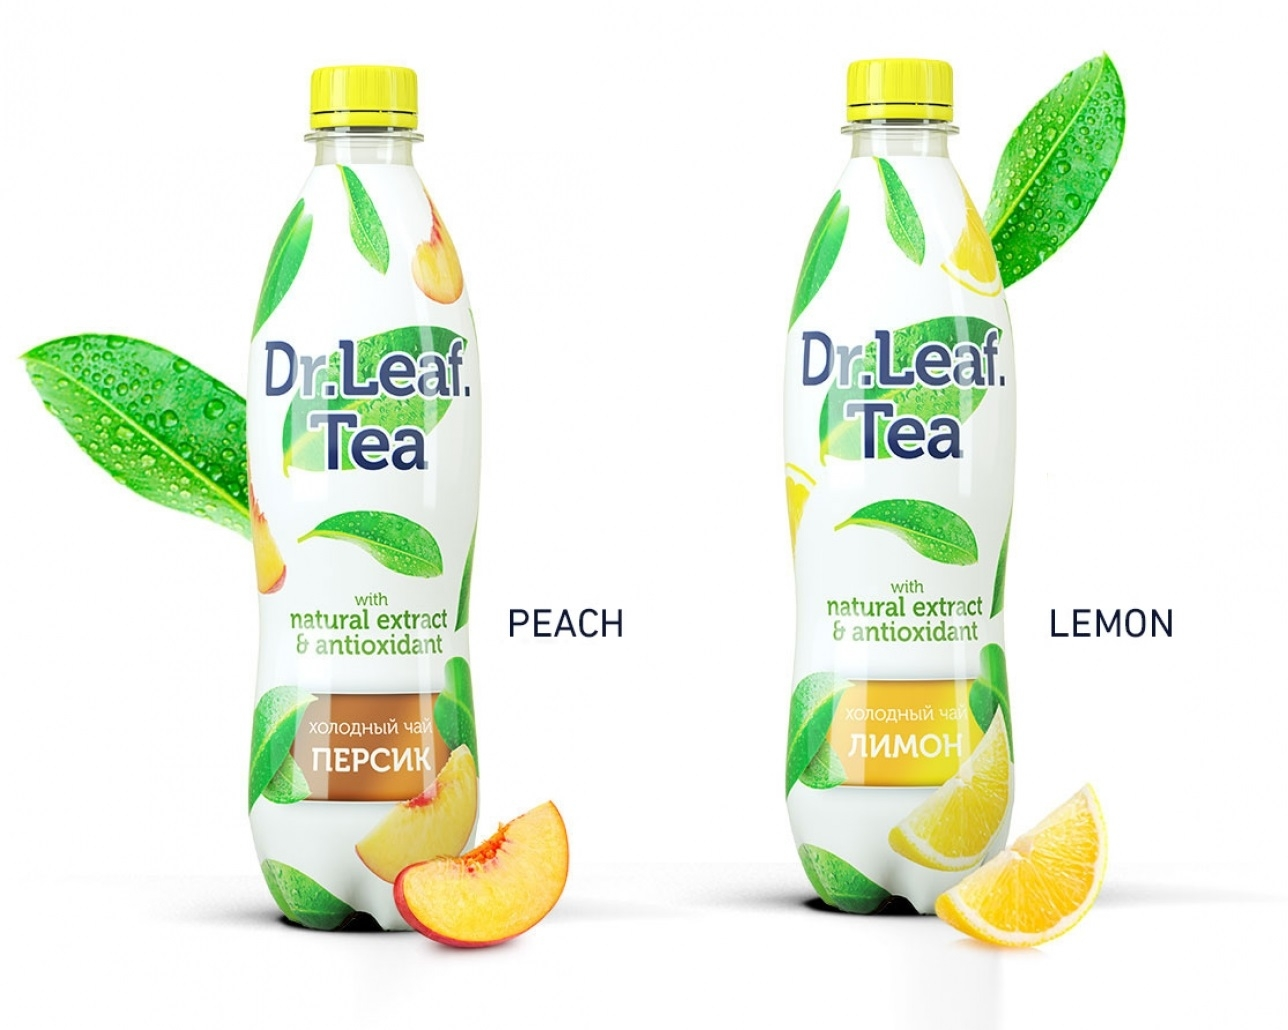 dr leaf tea